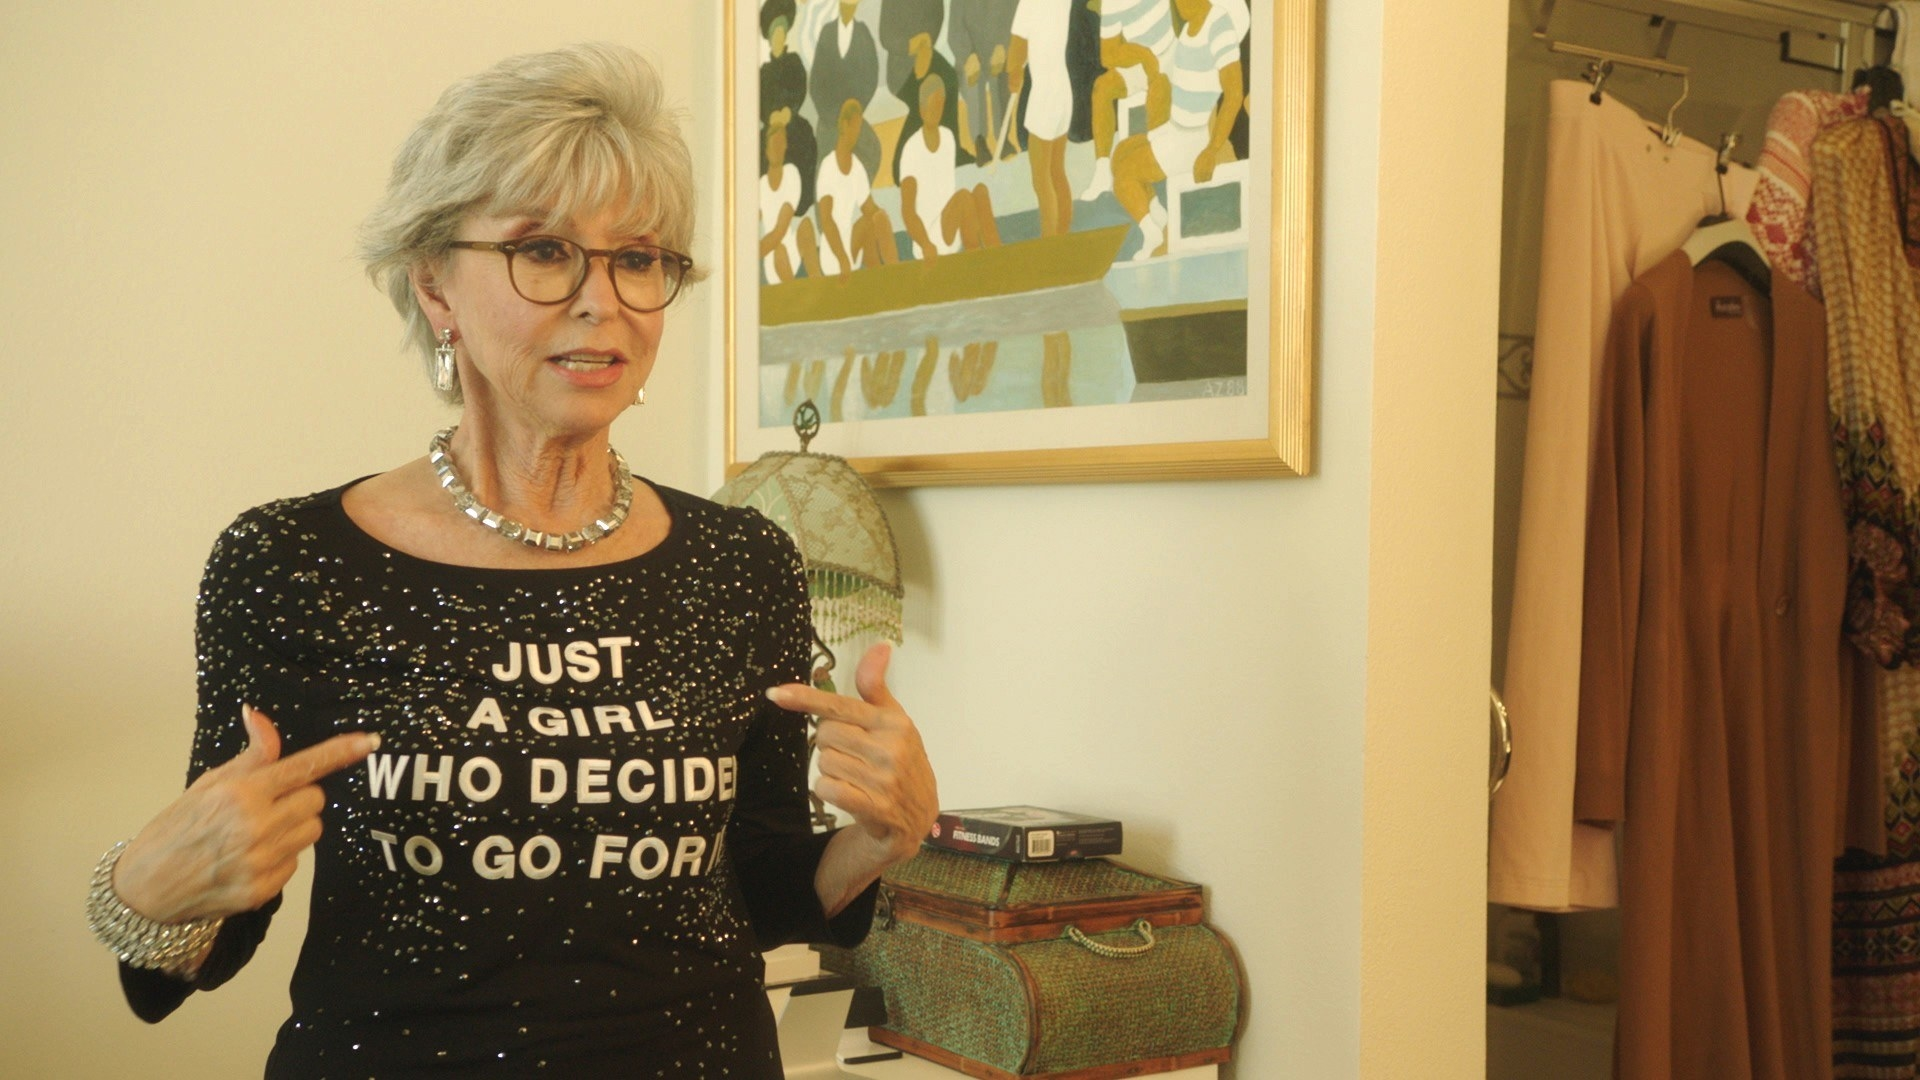 """Rita  Moreno pointing to herself and her shirt titled """"Just a girl who decided to go for it"""""""